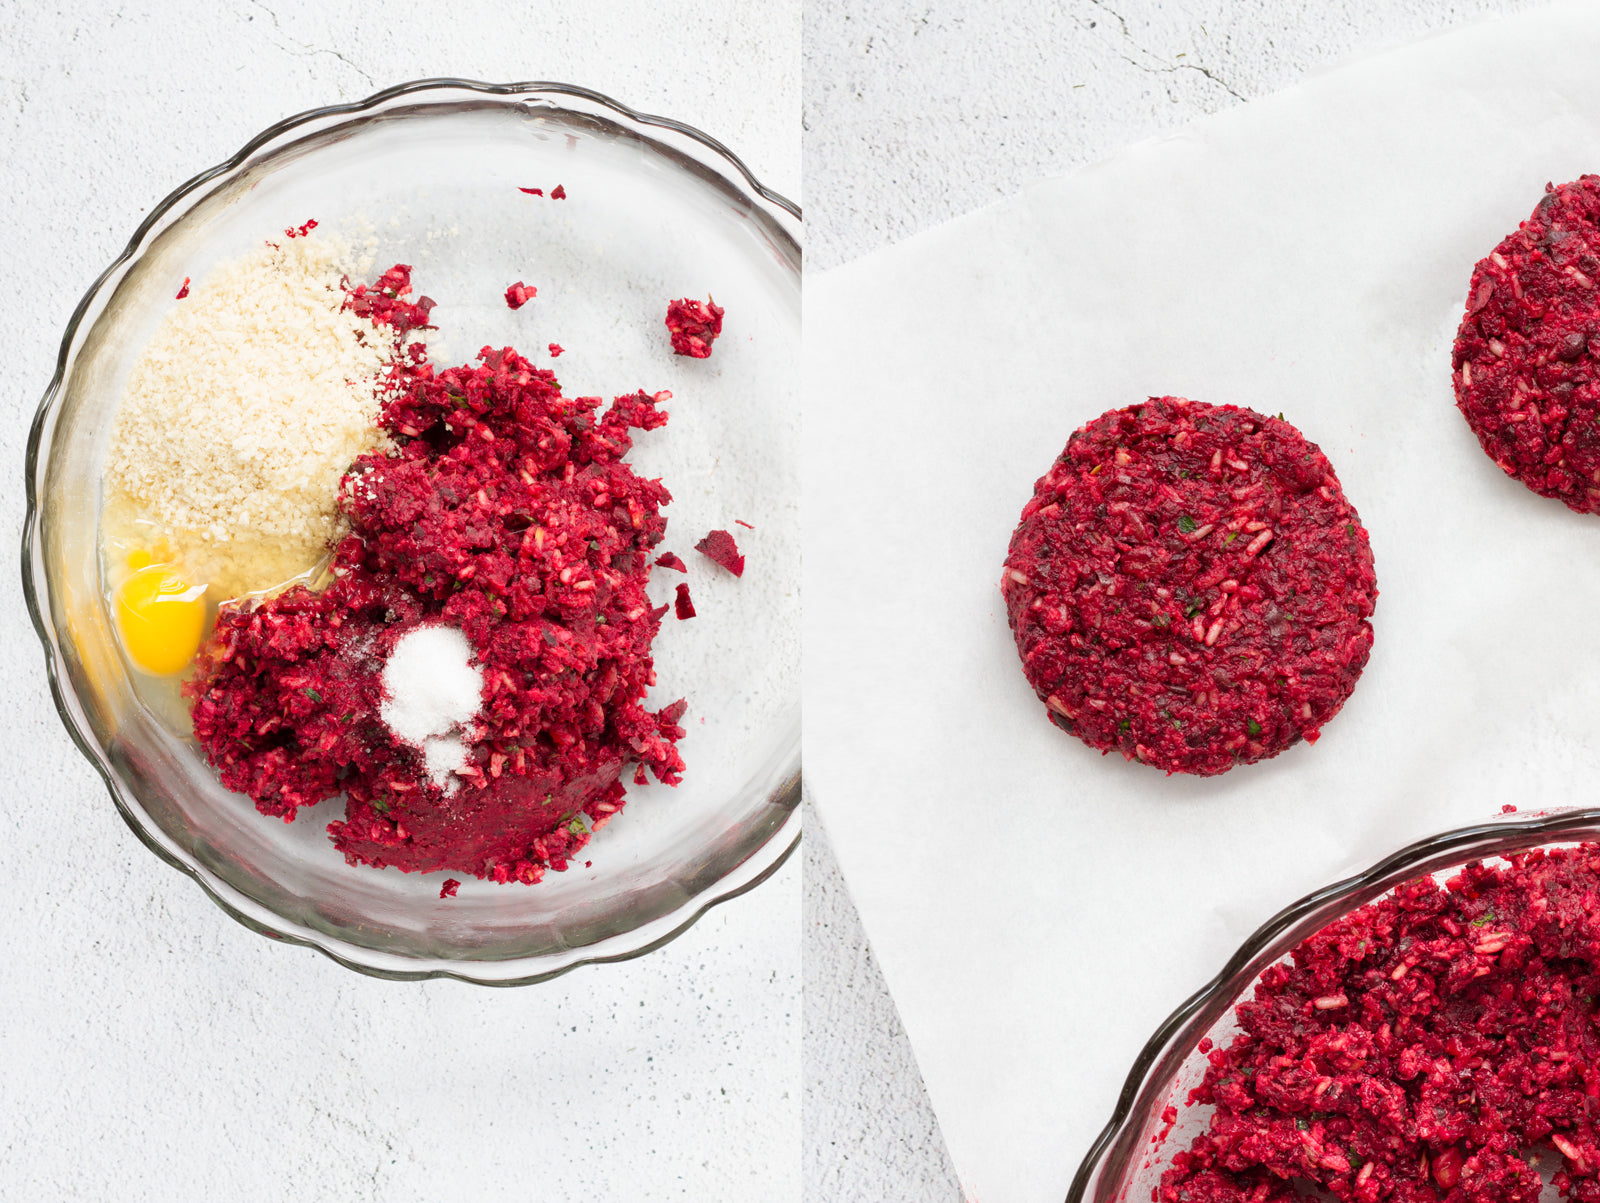 beet burger mix being formed into patties